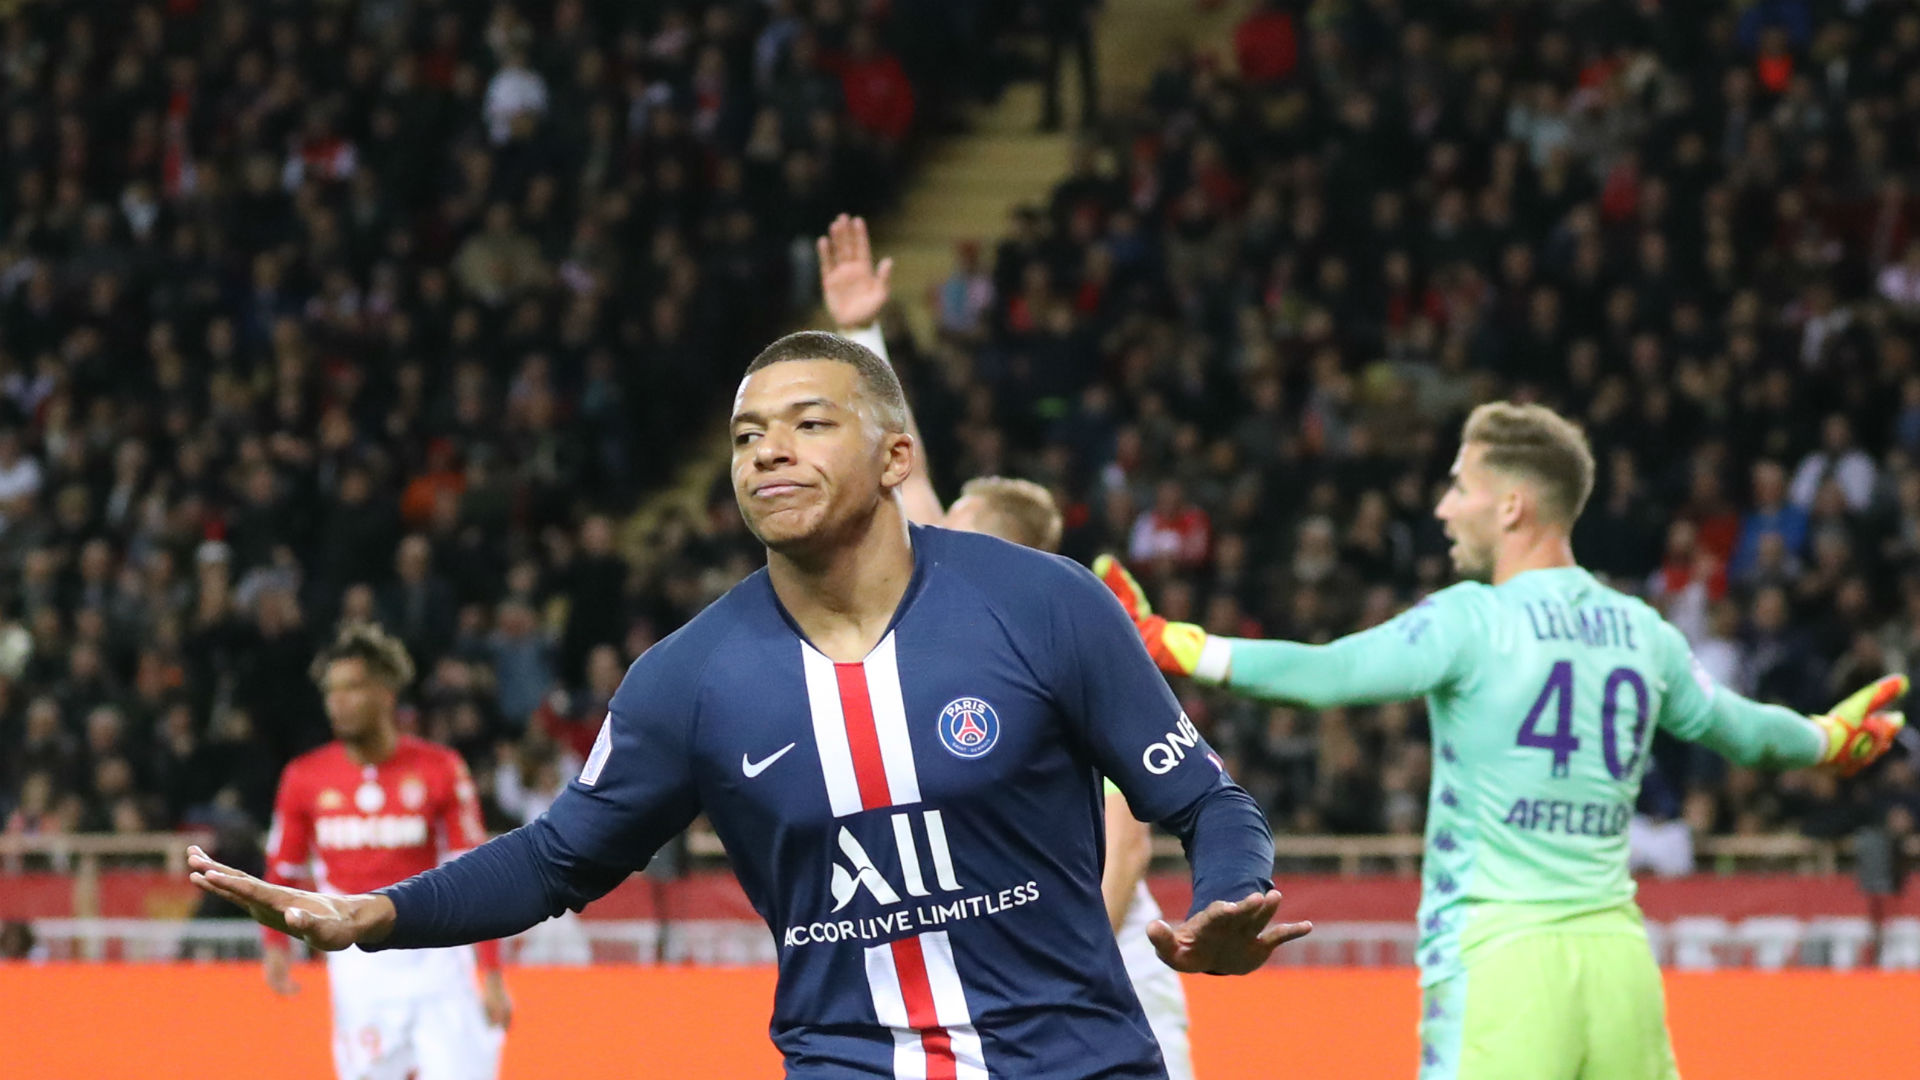 Monaco 1-4 Paris Saint-Germain: Mbappe at the double as VAR frustrates hosts